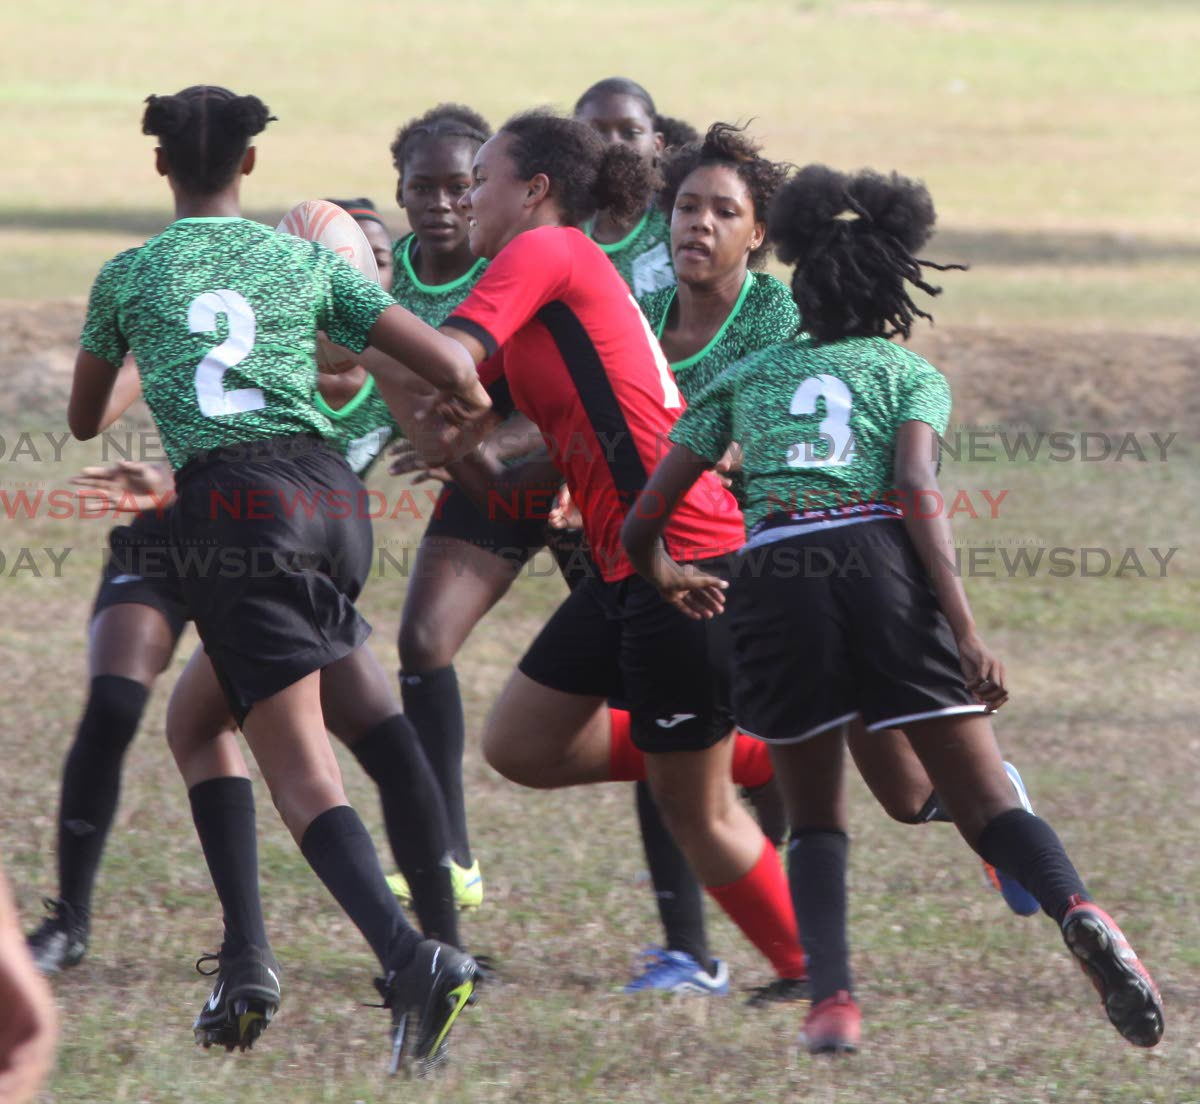 Bishop Anstey's Babi Oura is tackled by six San Juan North players in the Schools Girls Rugby League final yesterday at the Queen's Park Savannah, Port of Spain. PHOTO BY ANGELO MARCELLE